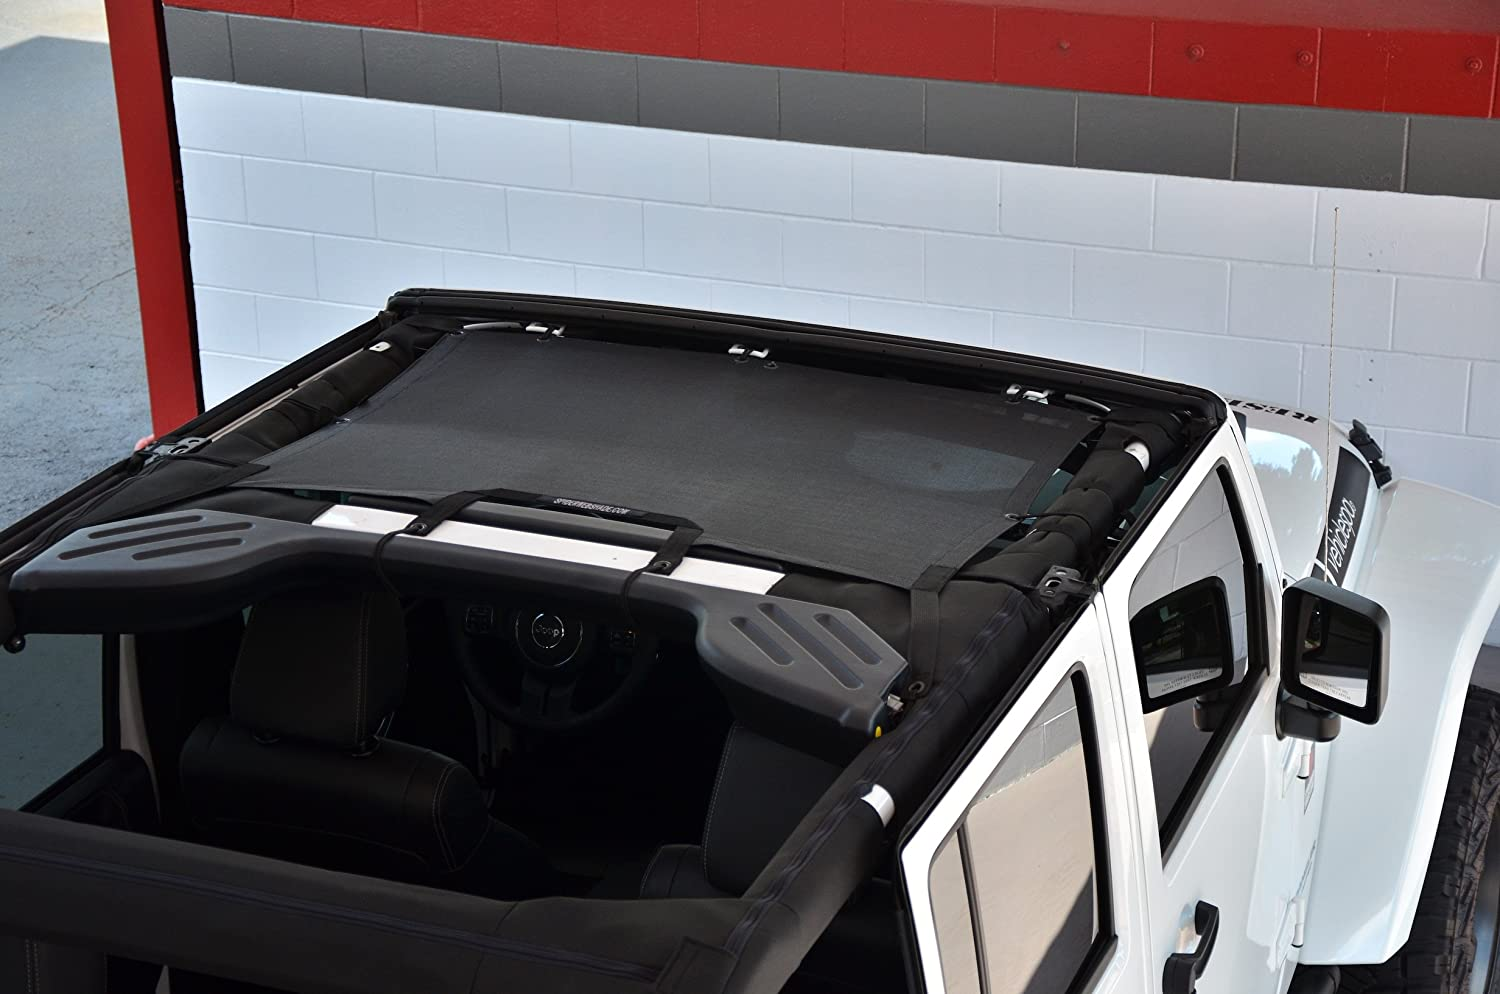 Spiderwebshade Jeep Wrangler Jkini Mesh Shade Top Install Freedom Sunshade Uv Protection Accessory Usa Made With 5 Year Warranty For Your Jk 2 Door And Jku